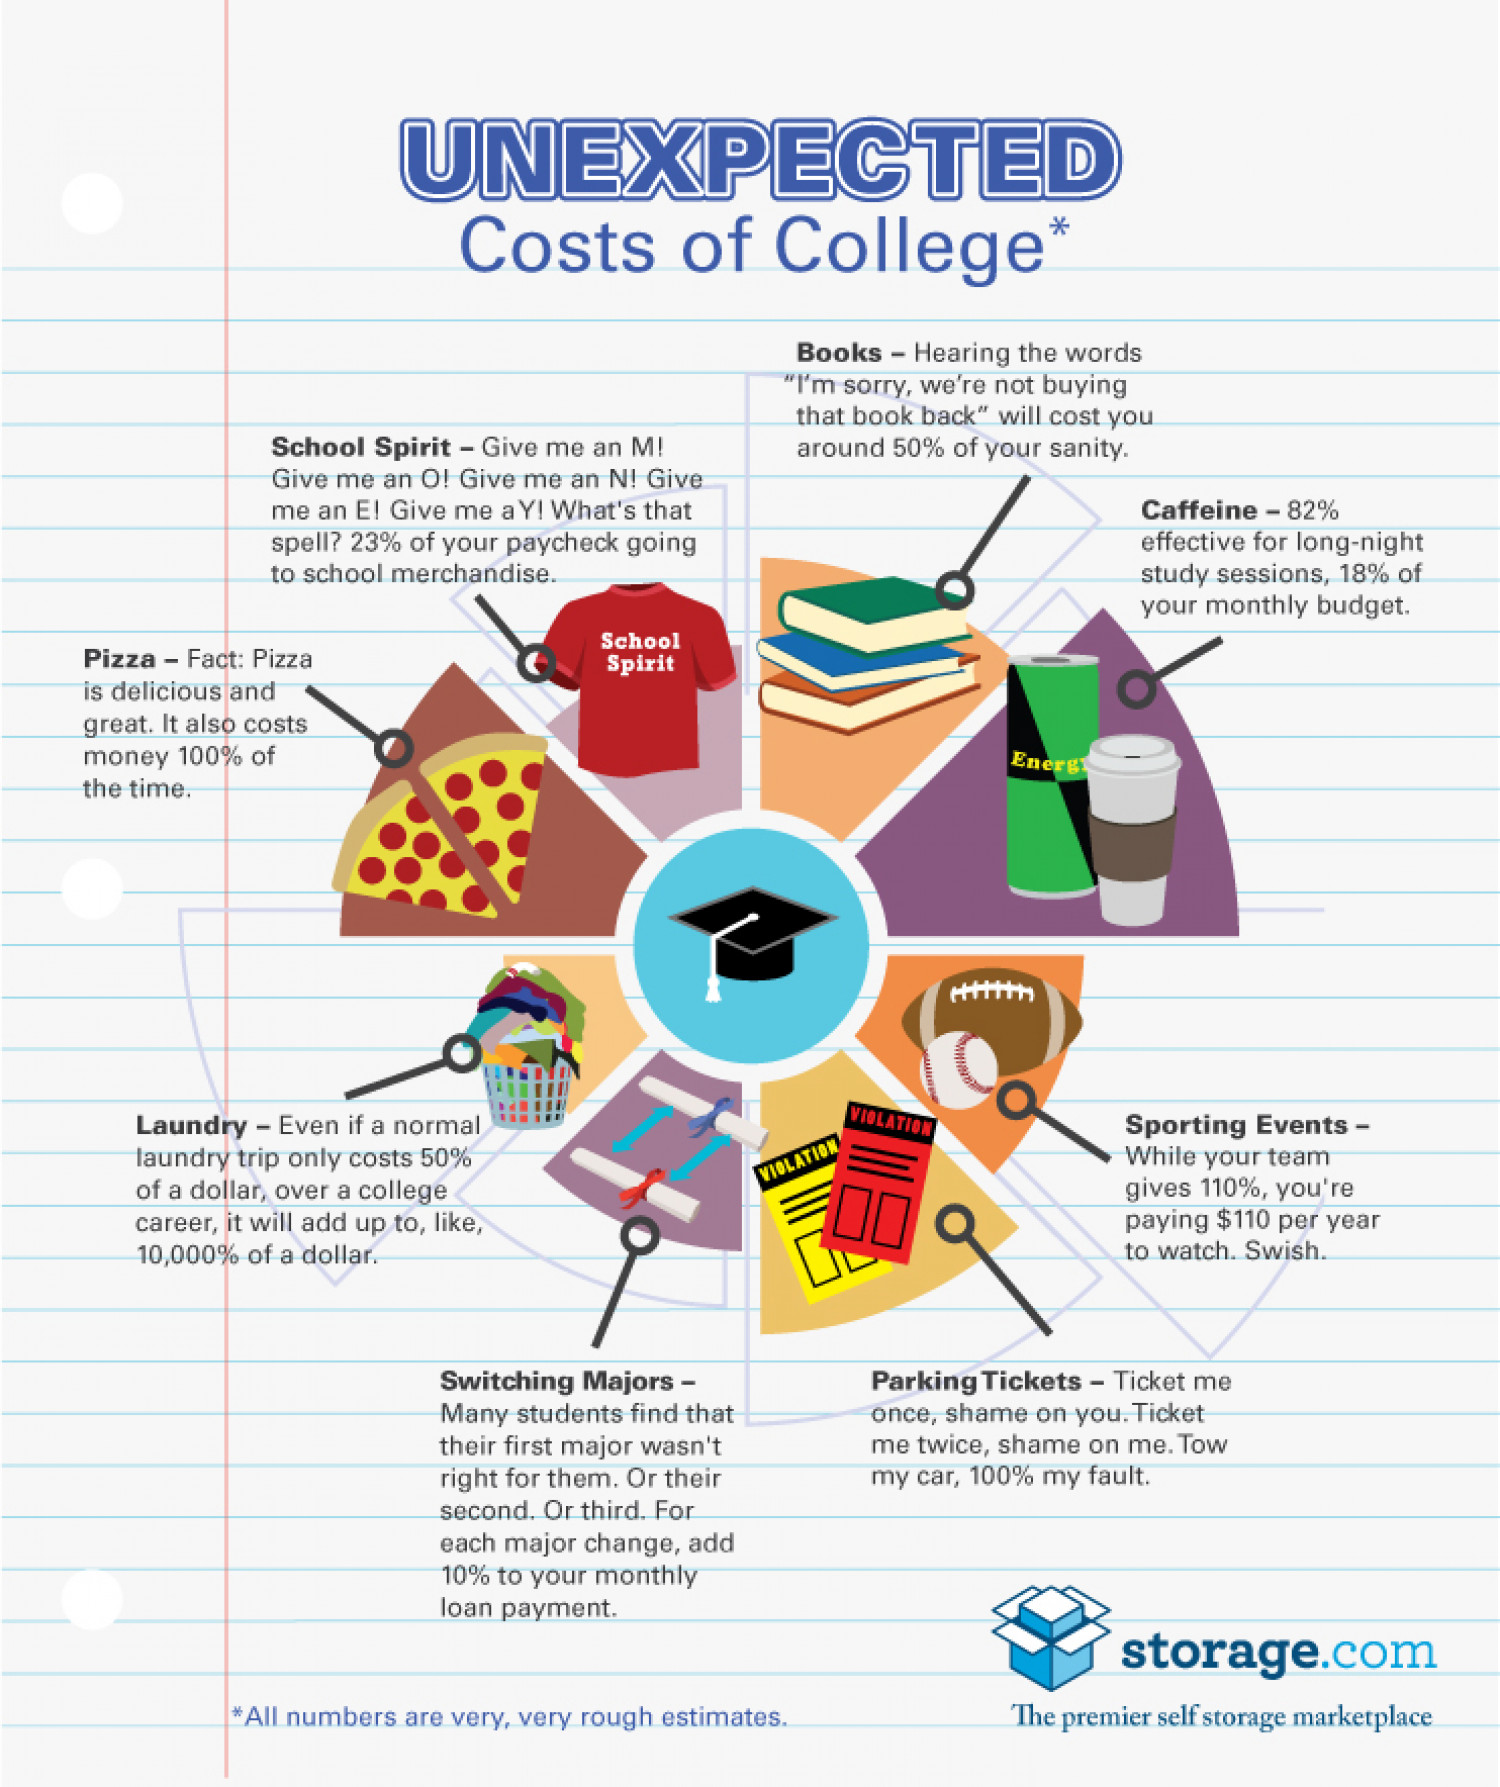 The Unexpected Cost of College Infographic